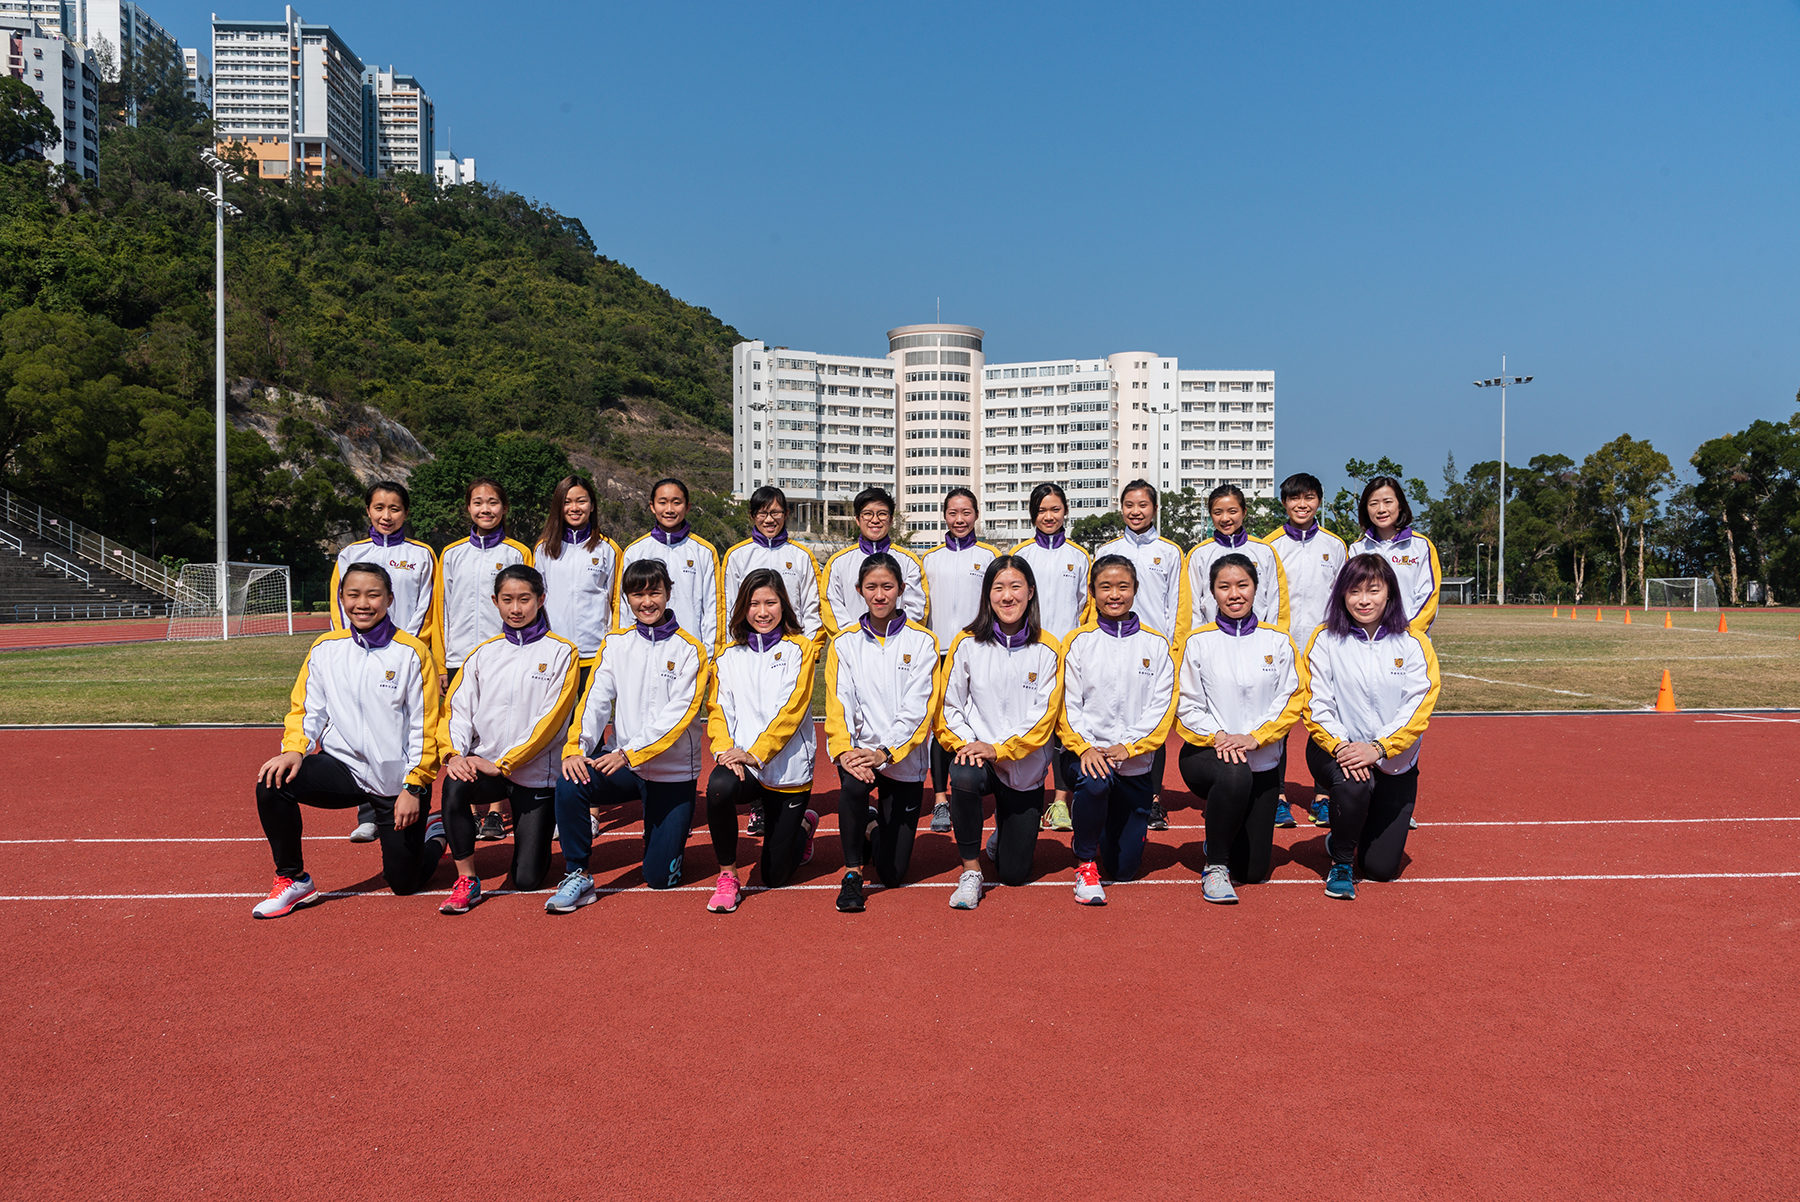 Athletics girls 2018 2019 s